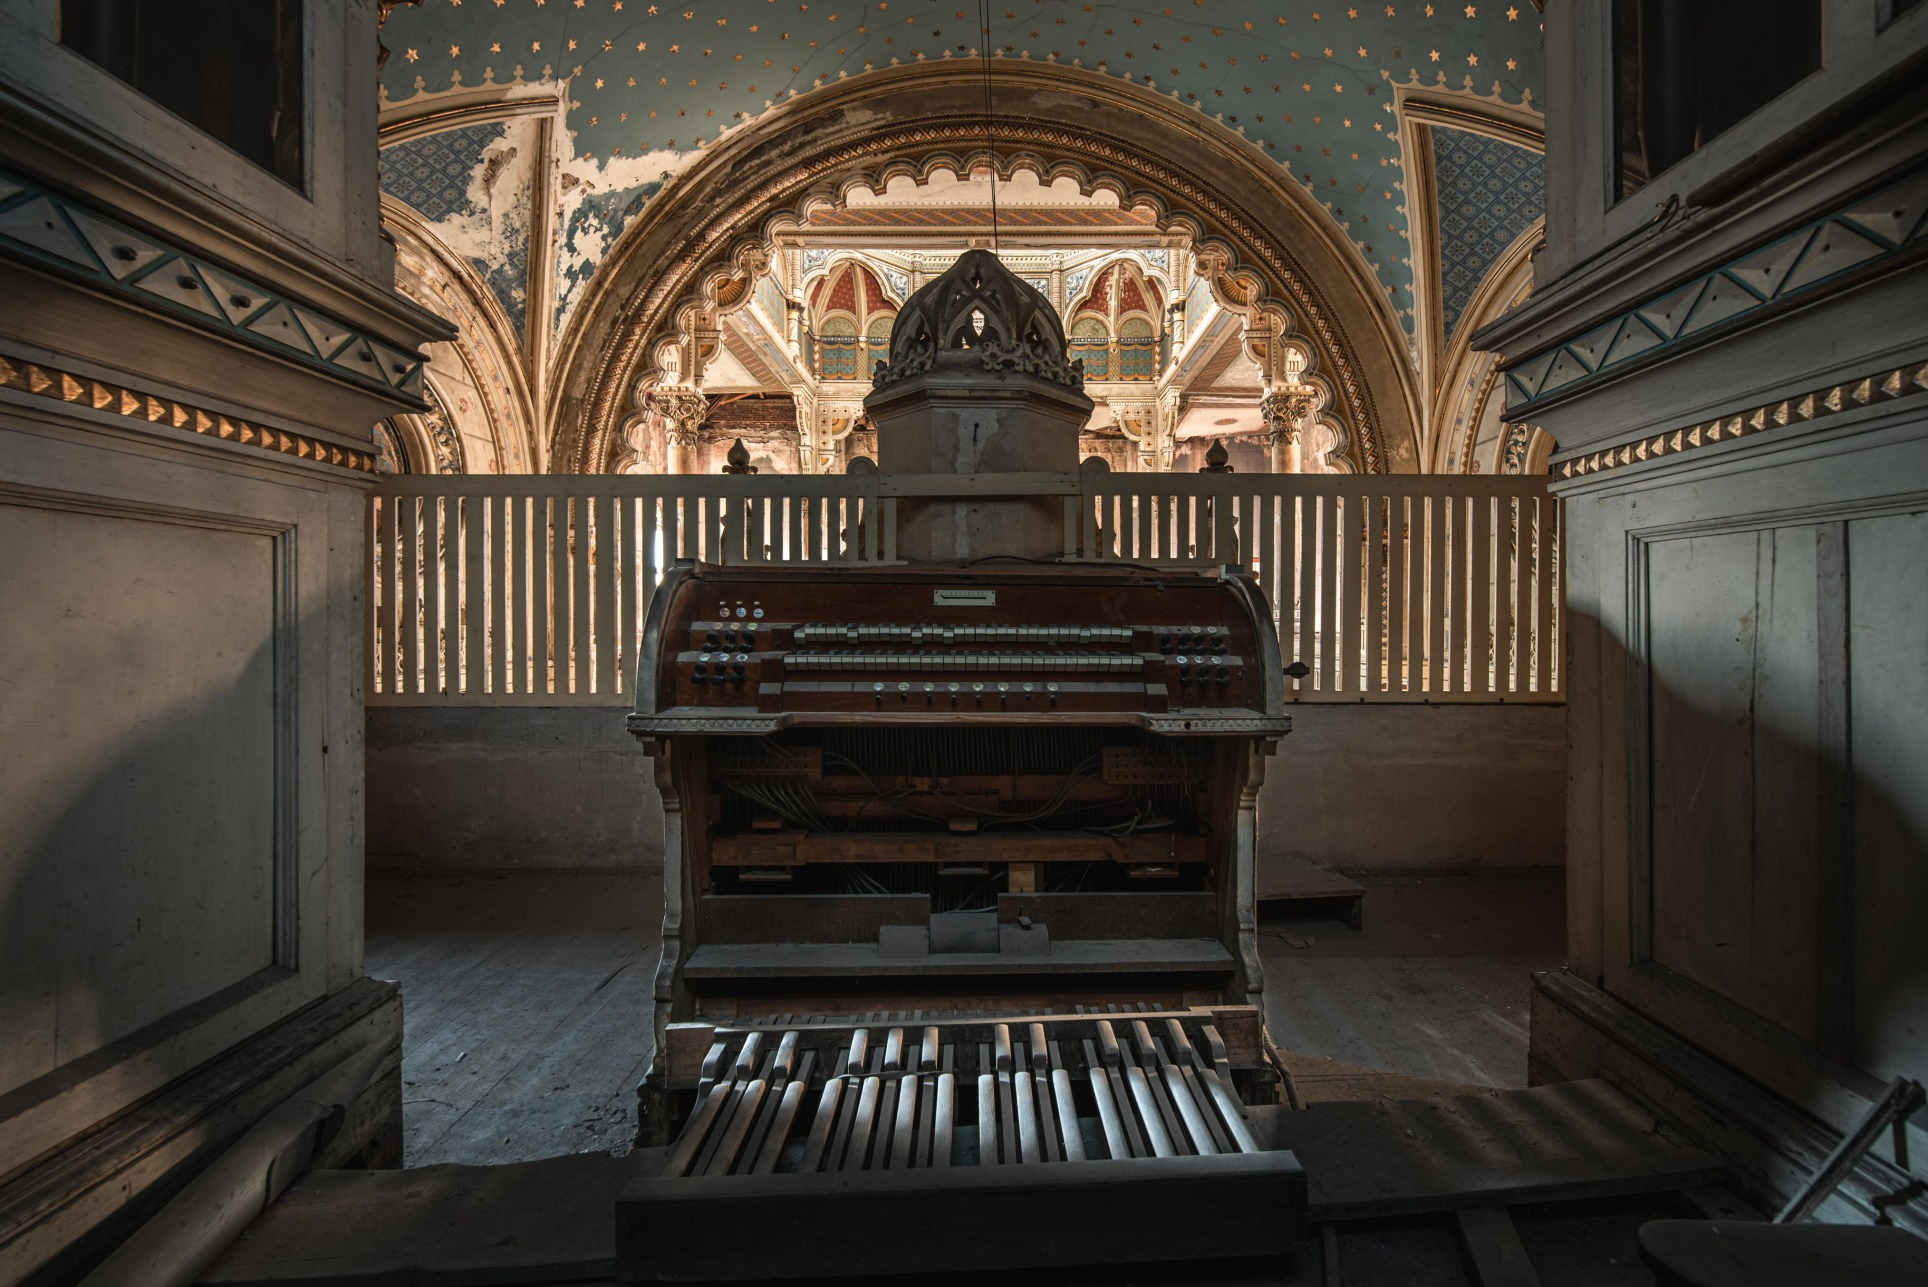 The organ was built around 1900 by a German expert.